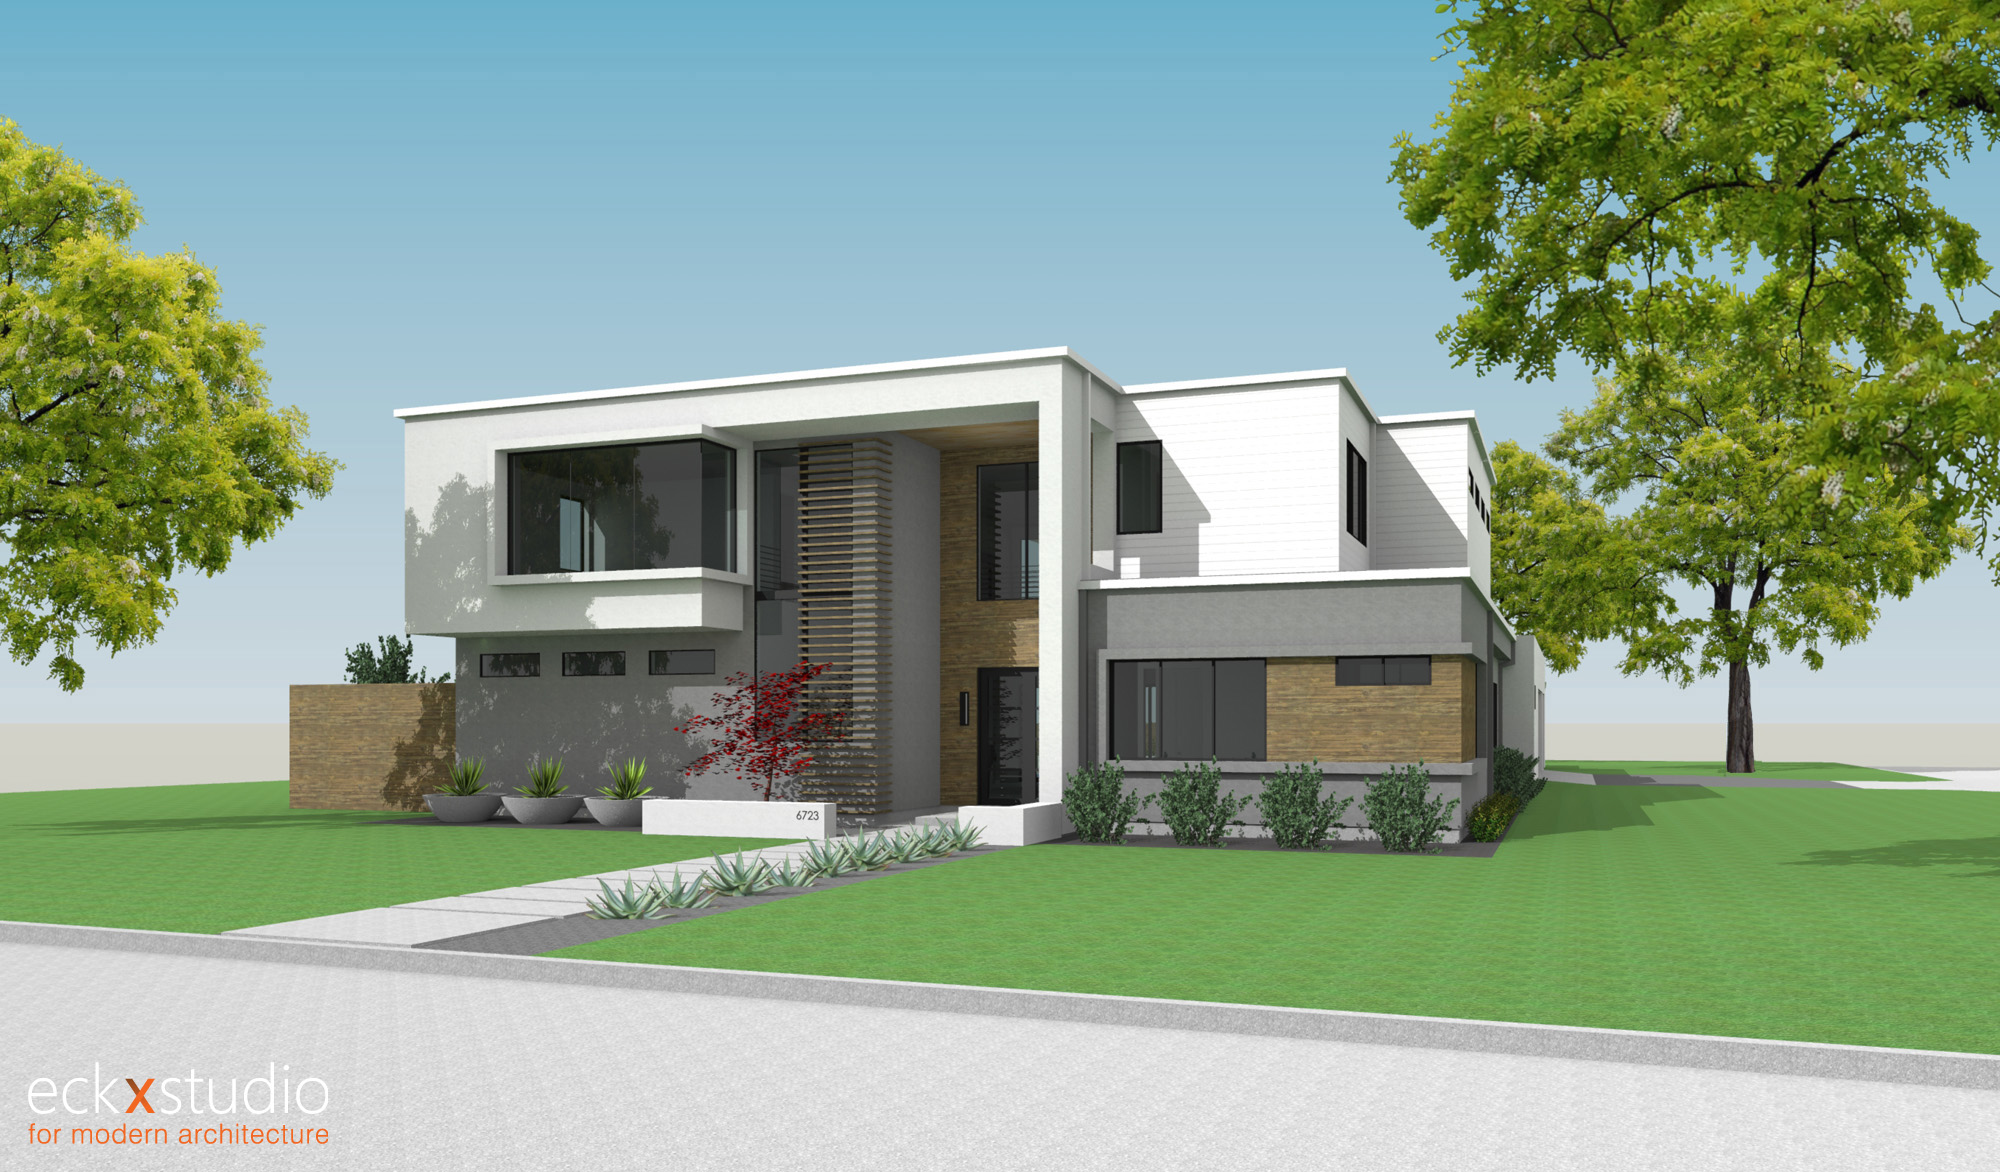 Oriole residence front elevation image